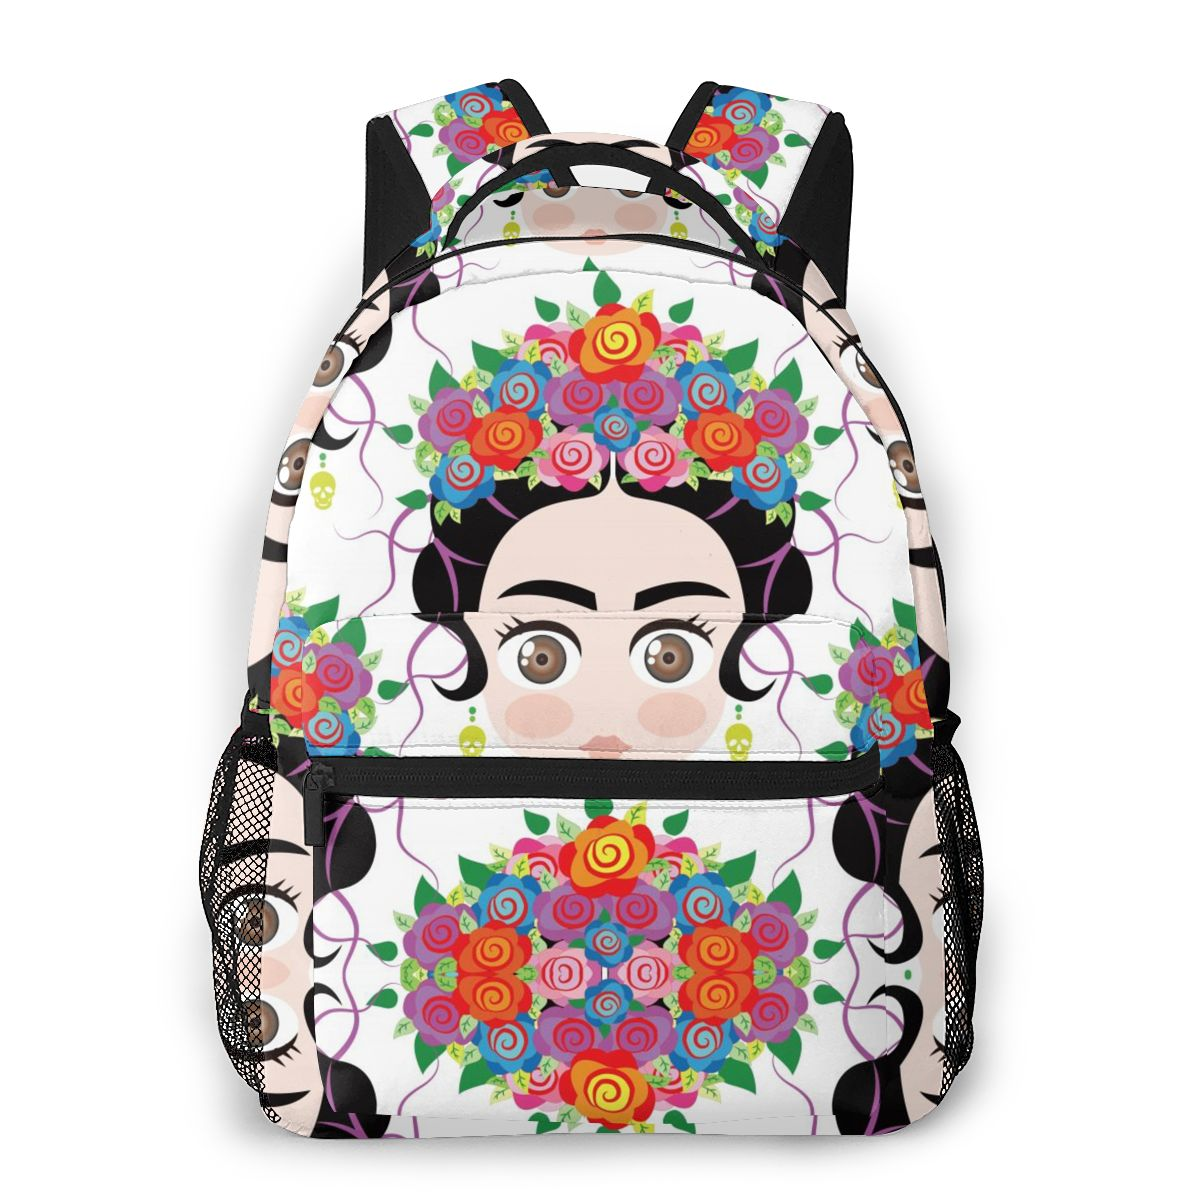 Women Backpack Travel Bag Baby Mexican Woman With Colorful Flower Crown School Bag Fashion Shoulder Bag For Teenage Girl Bagpack